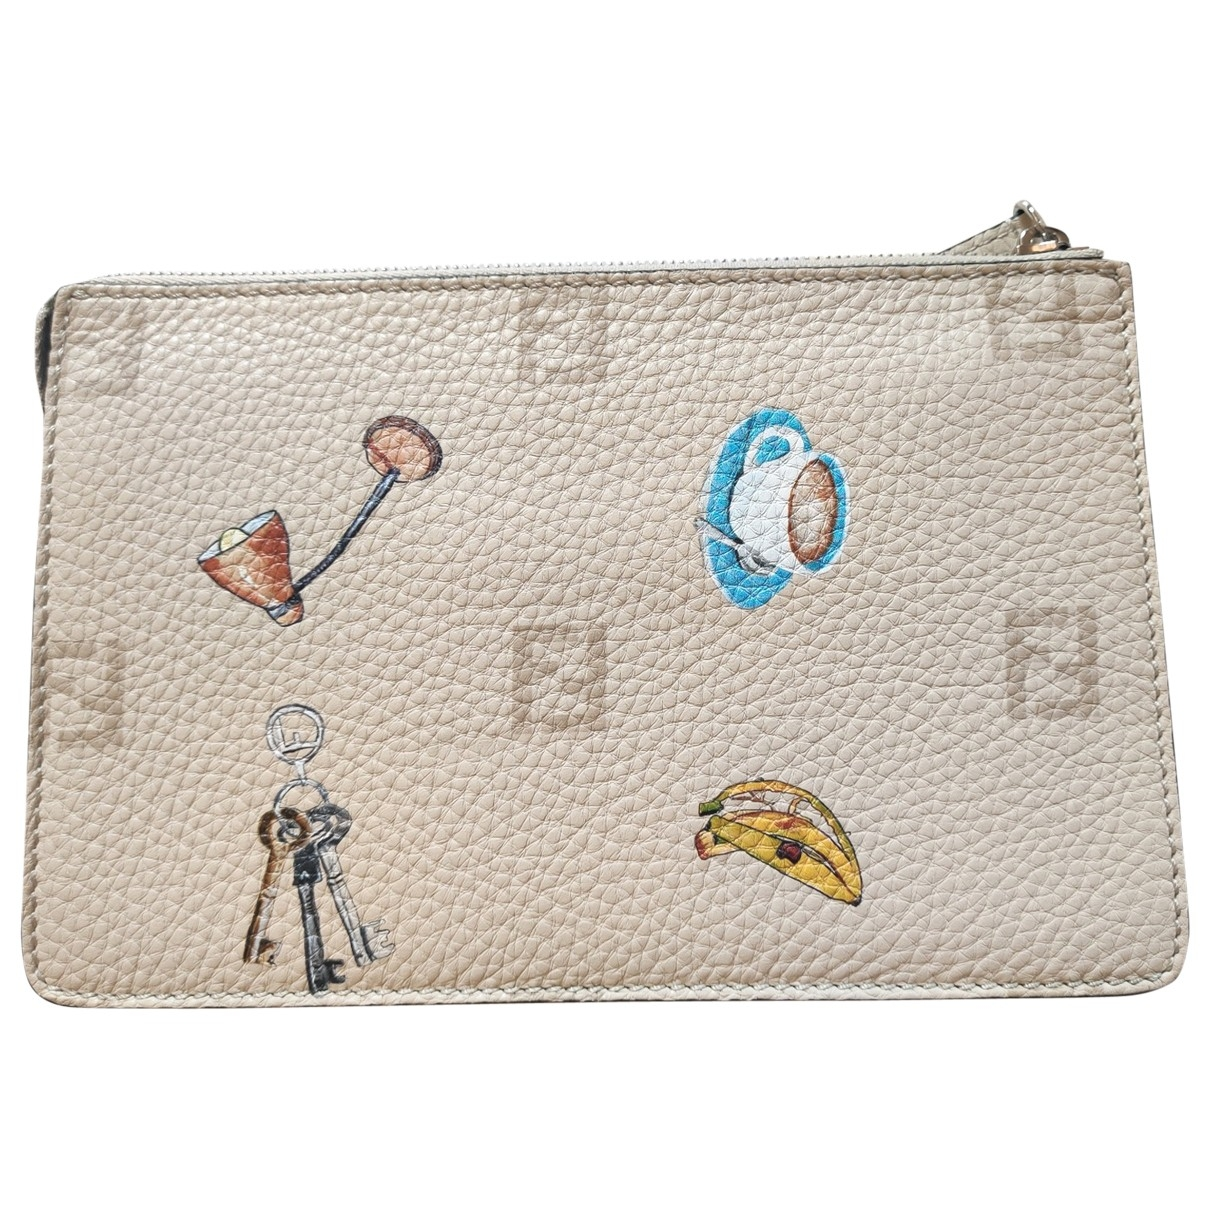 Fendi \N Clutch in  Bunt Leder